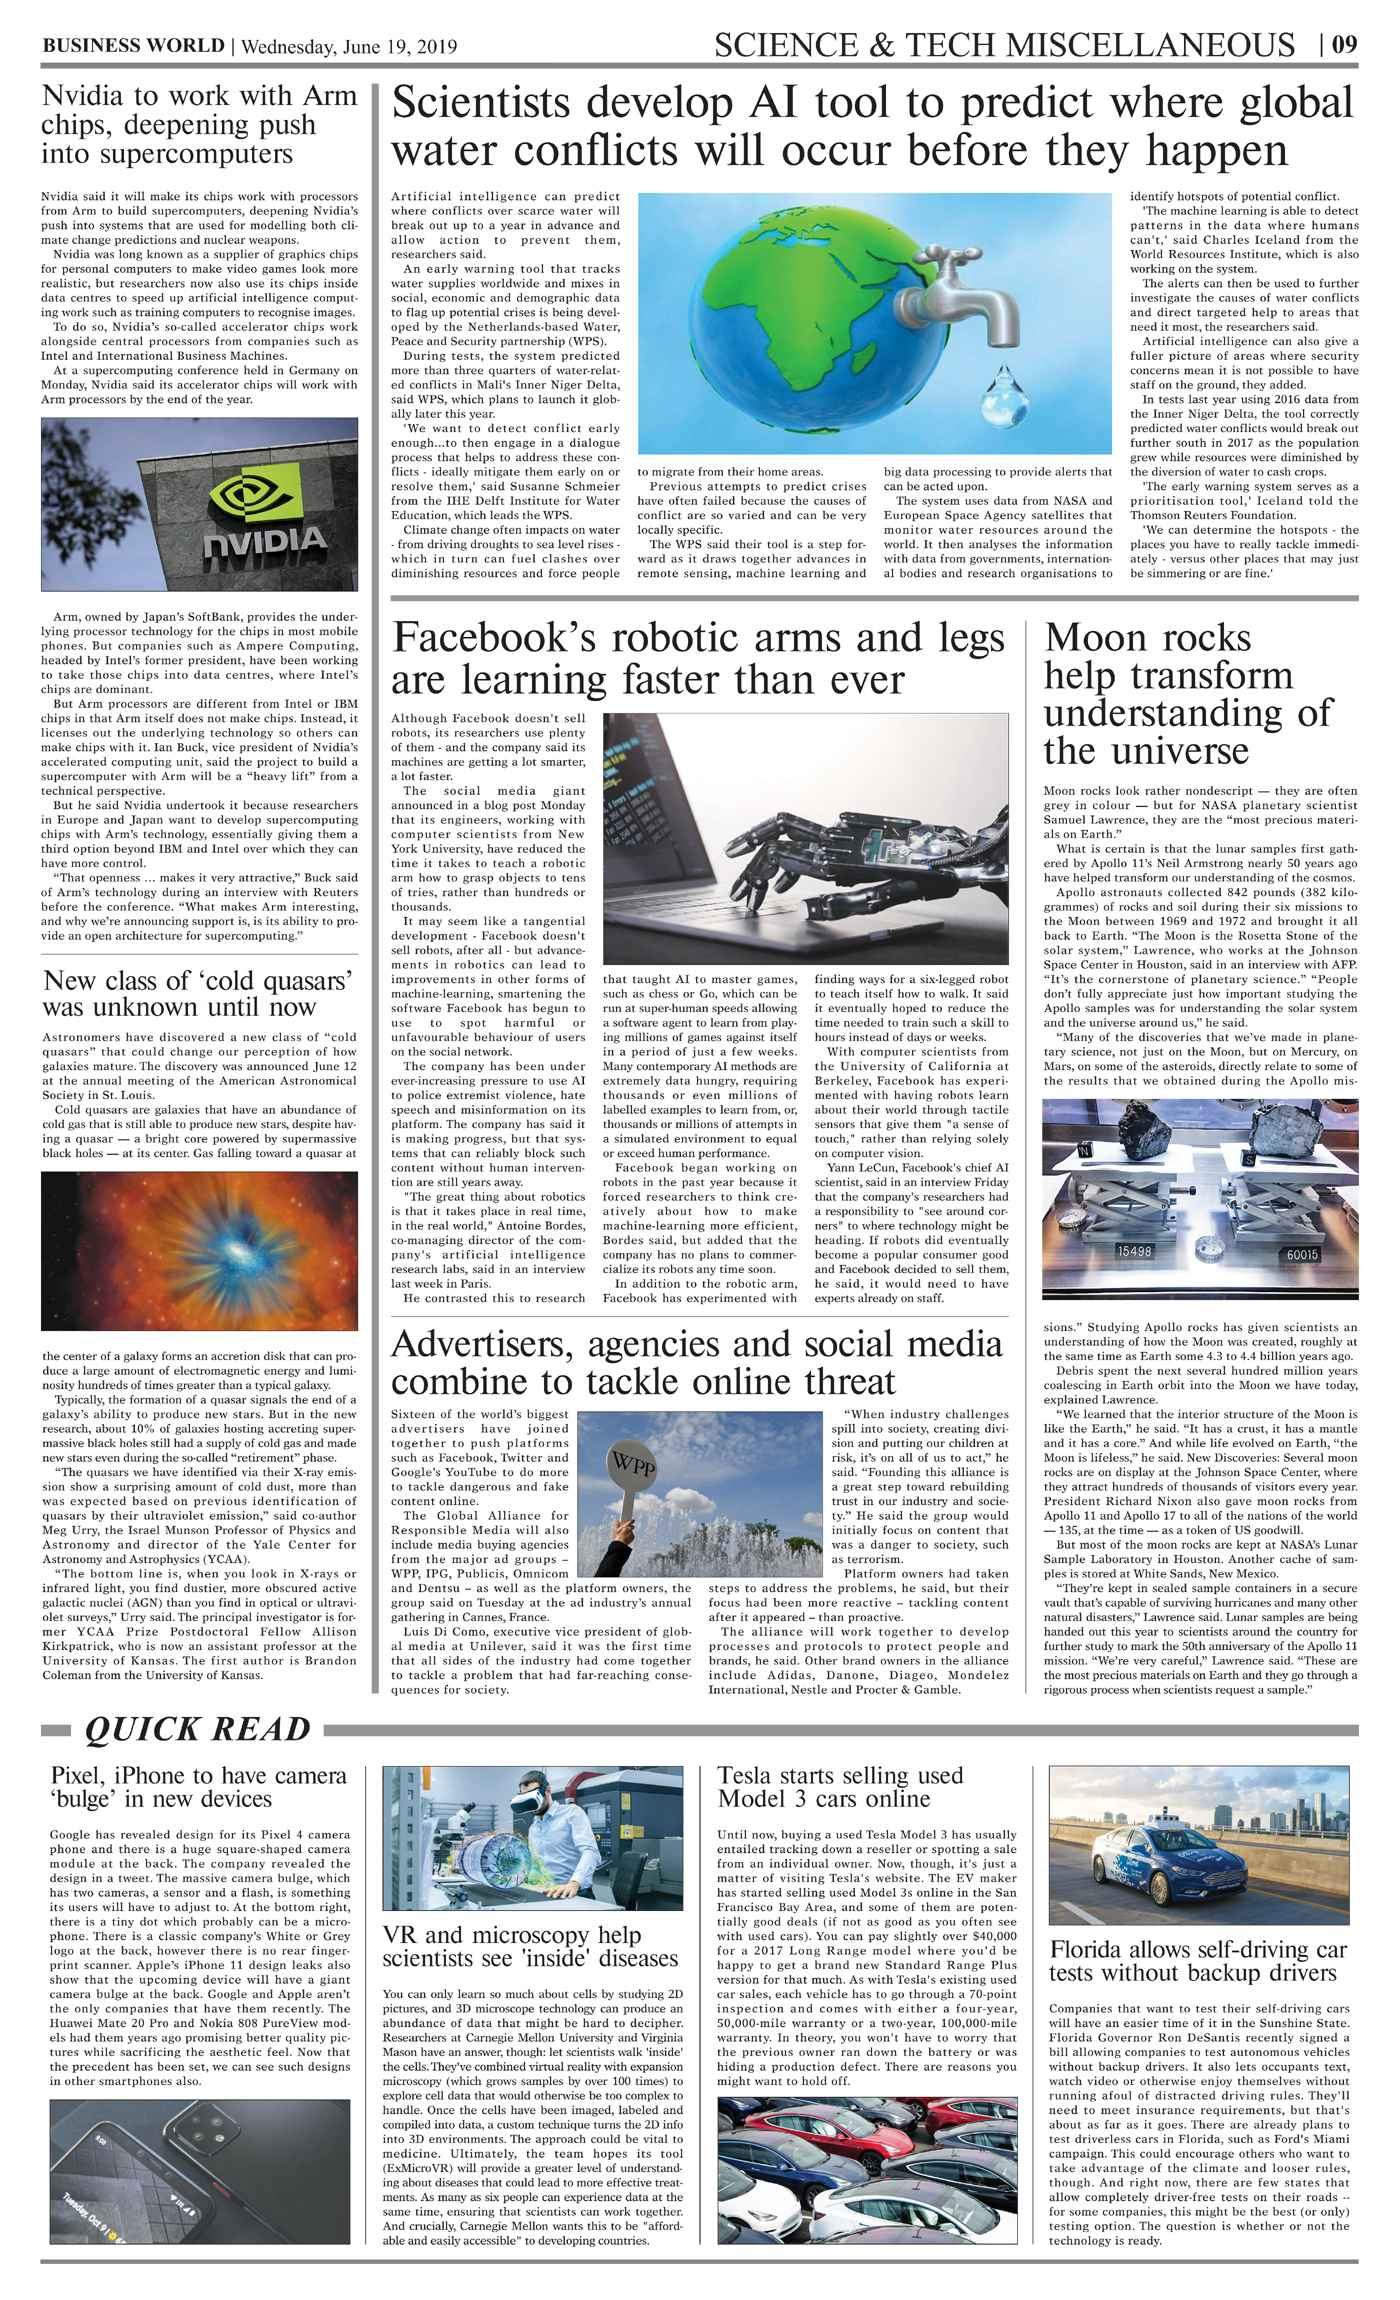 Daily Business World E-Paper 19th June 2019 - Daily Business